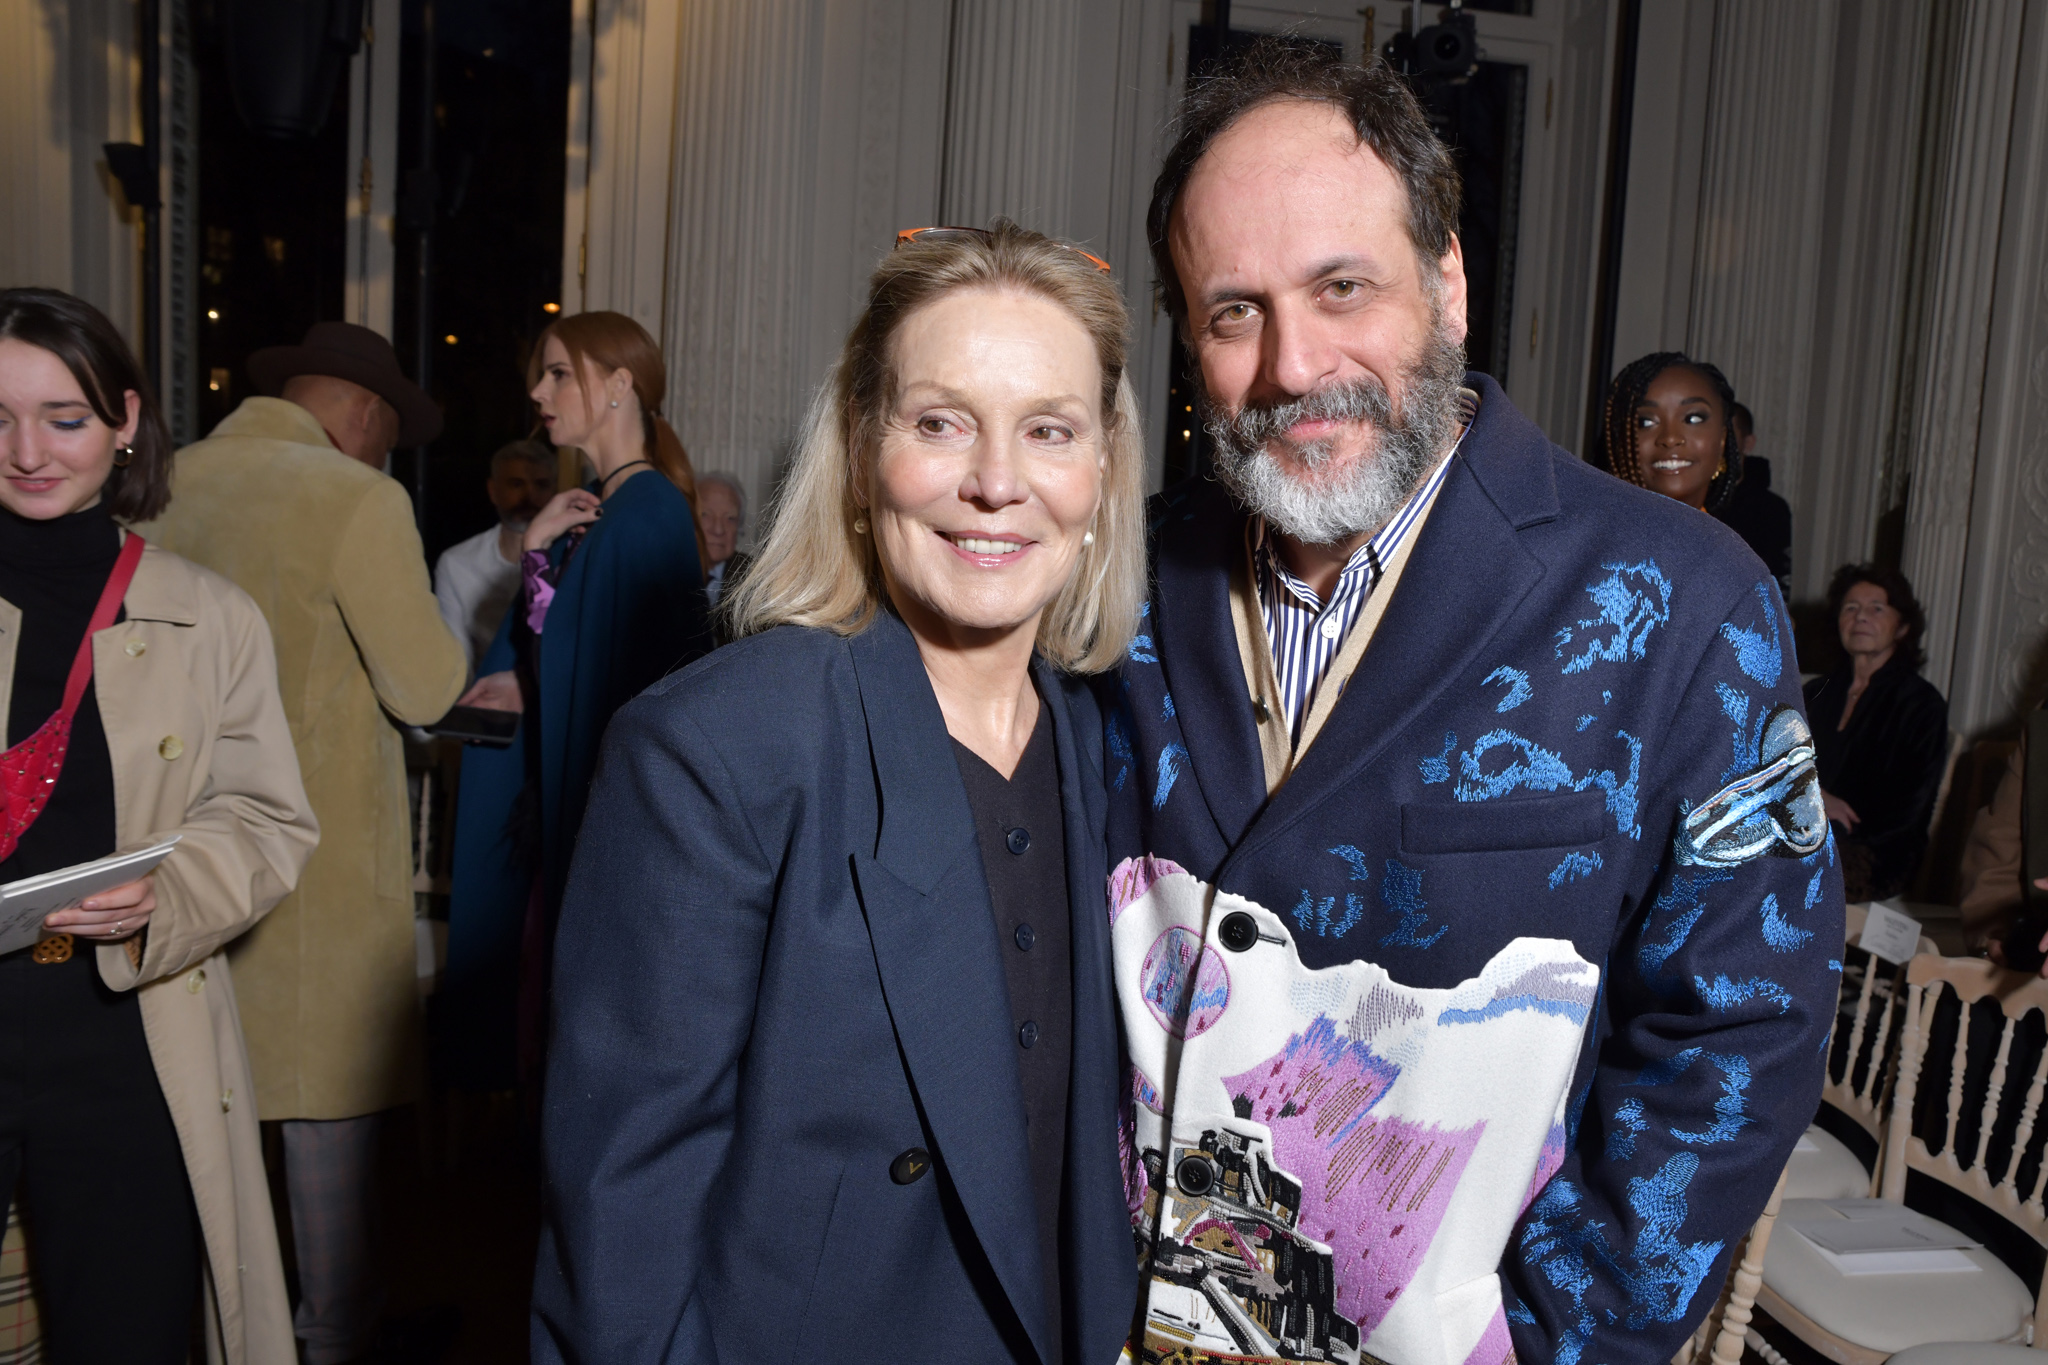 Marthe Keller and Luca Guadagnino  in the front row